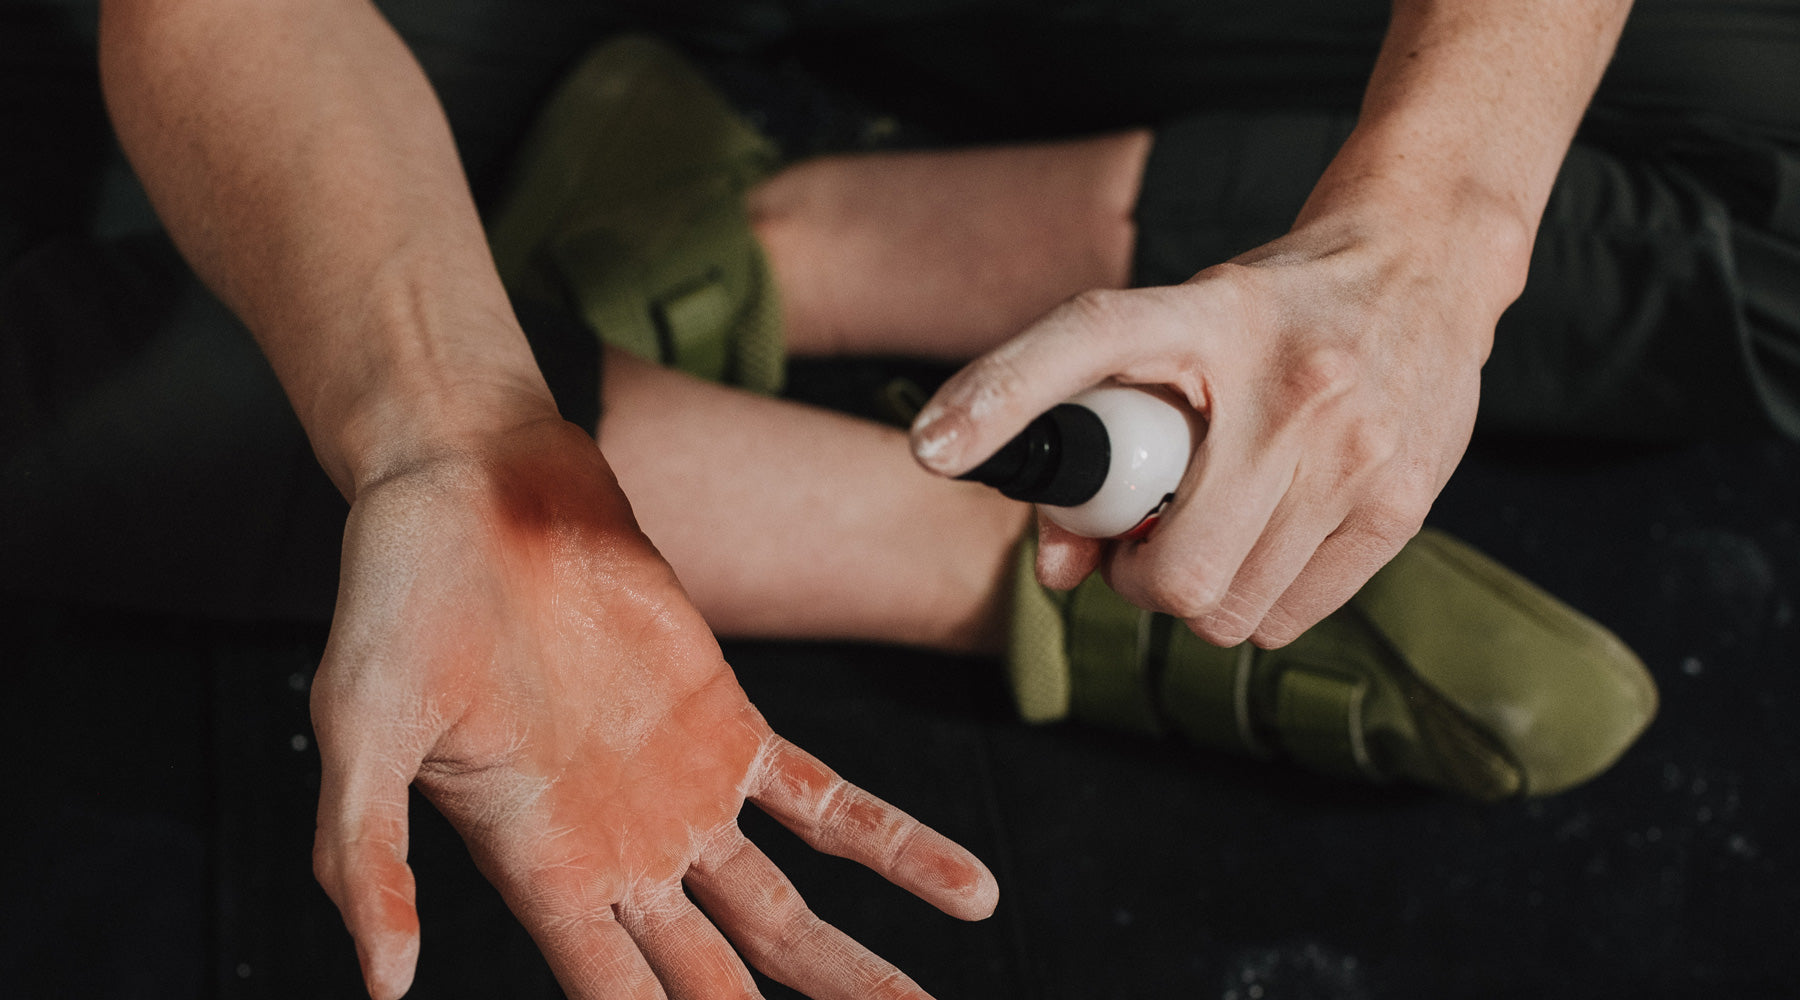 A climber sprays her hands with So iLL distribution Tokyo Powder React friction restorer